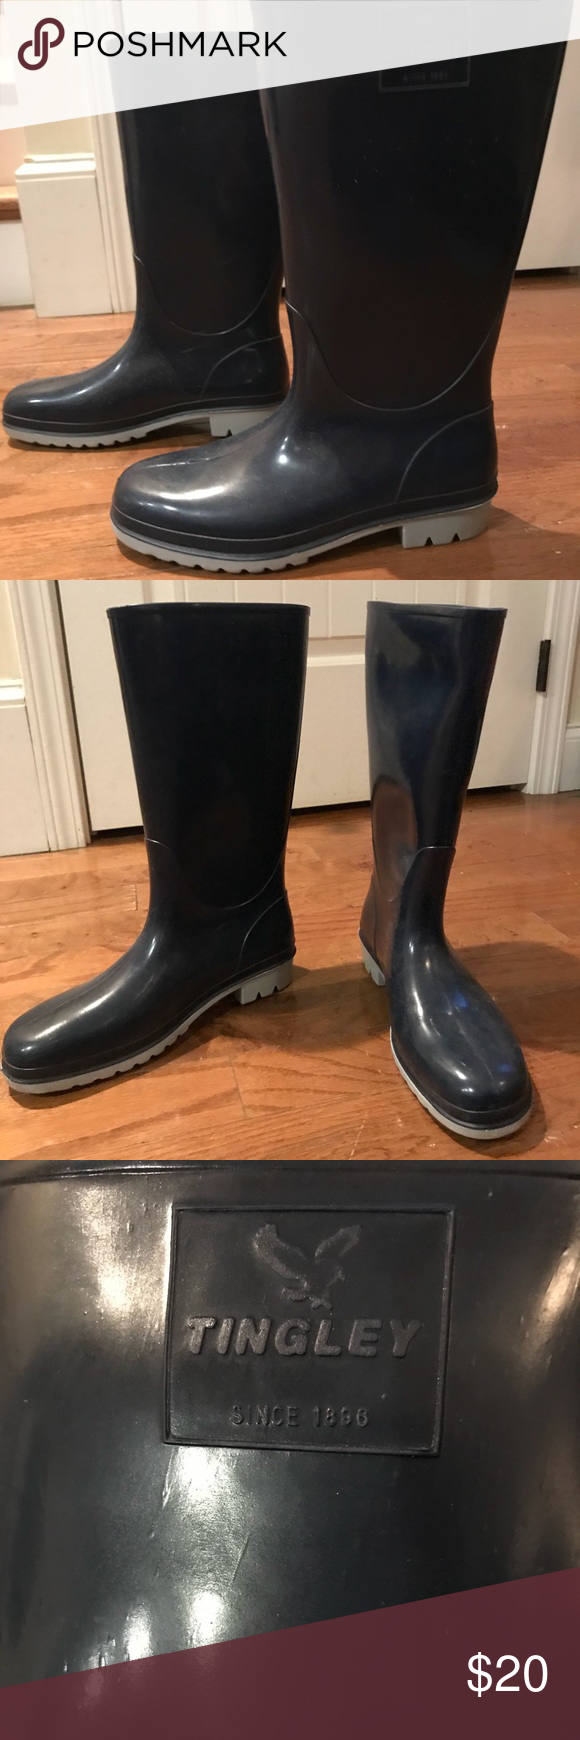 Navy Blue Rainboots These Are Navy Blue Rain Boots Super -3418